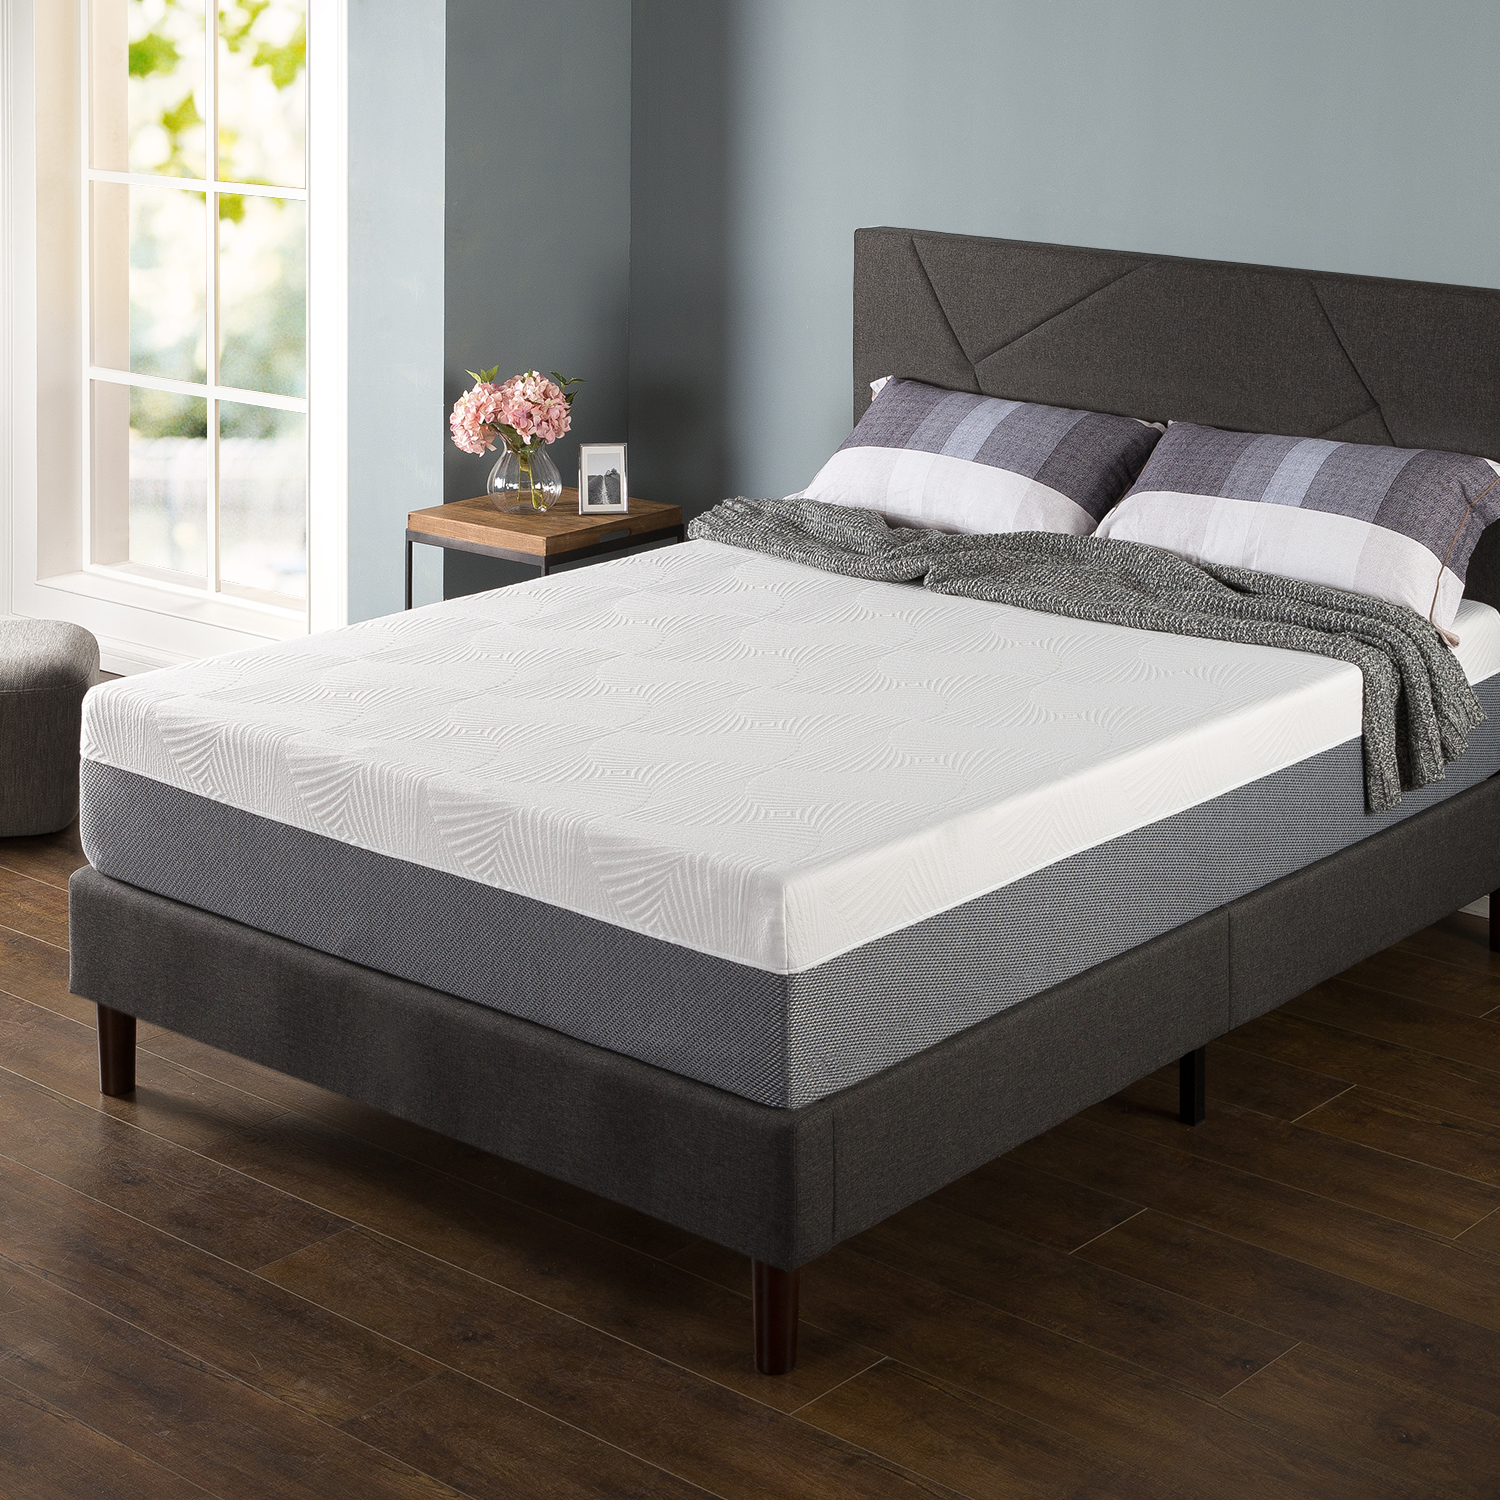 "Zinus Spa Sensations 12"" Memory Foam Full Size Mattress"